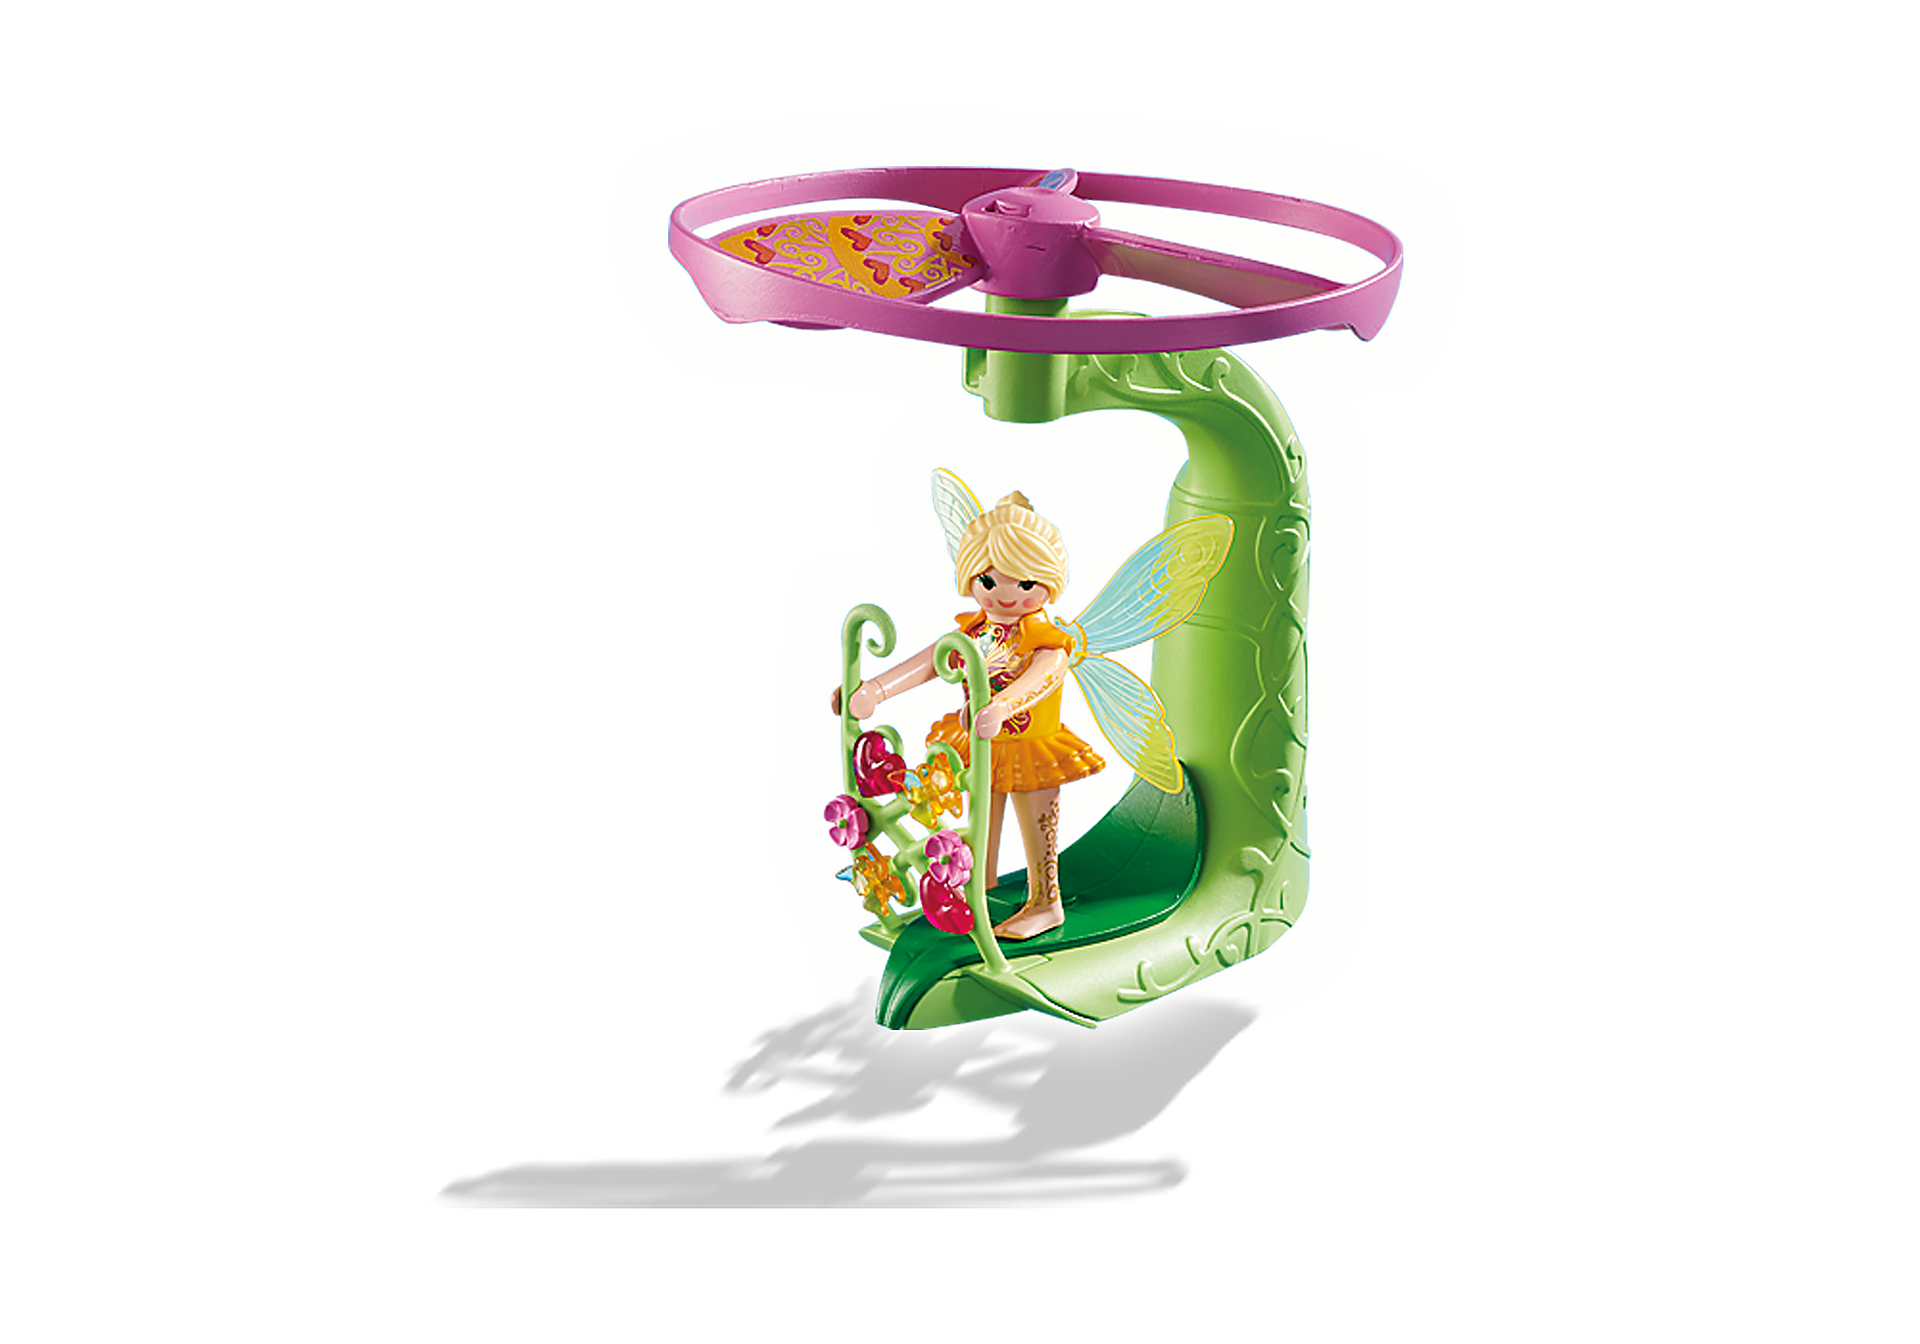 70056 Fairy Pull Cord Flyer zoom image6